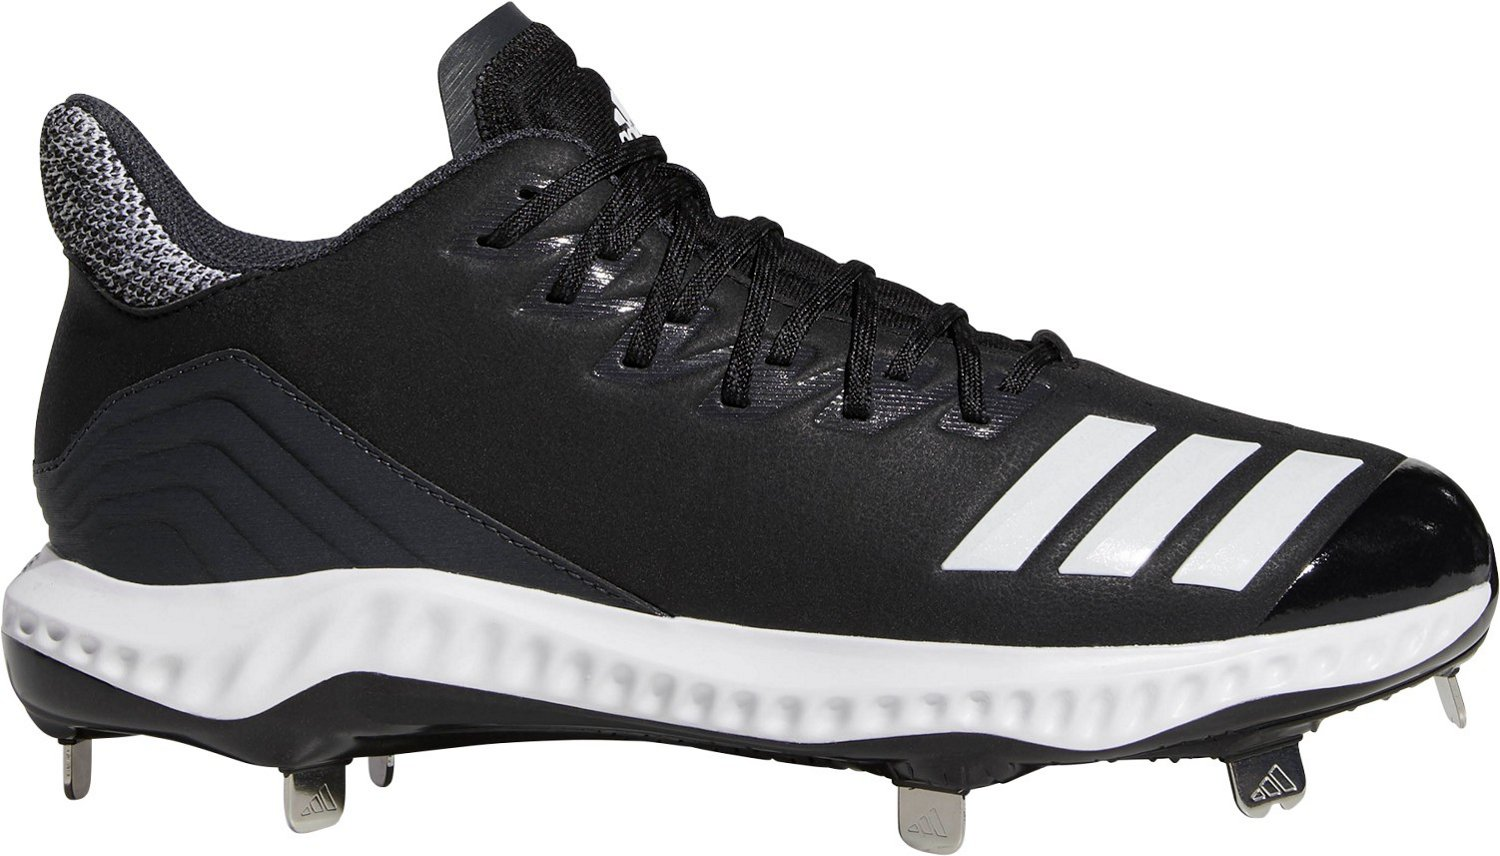 00976611331a6 adidas Men s Icon Bounce Low Metal Baseball Cleats